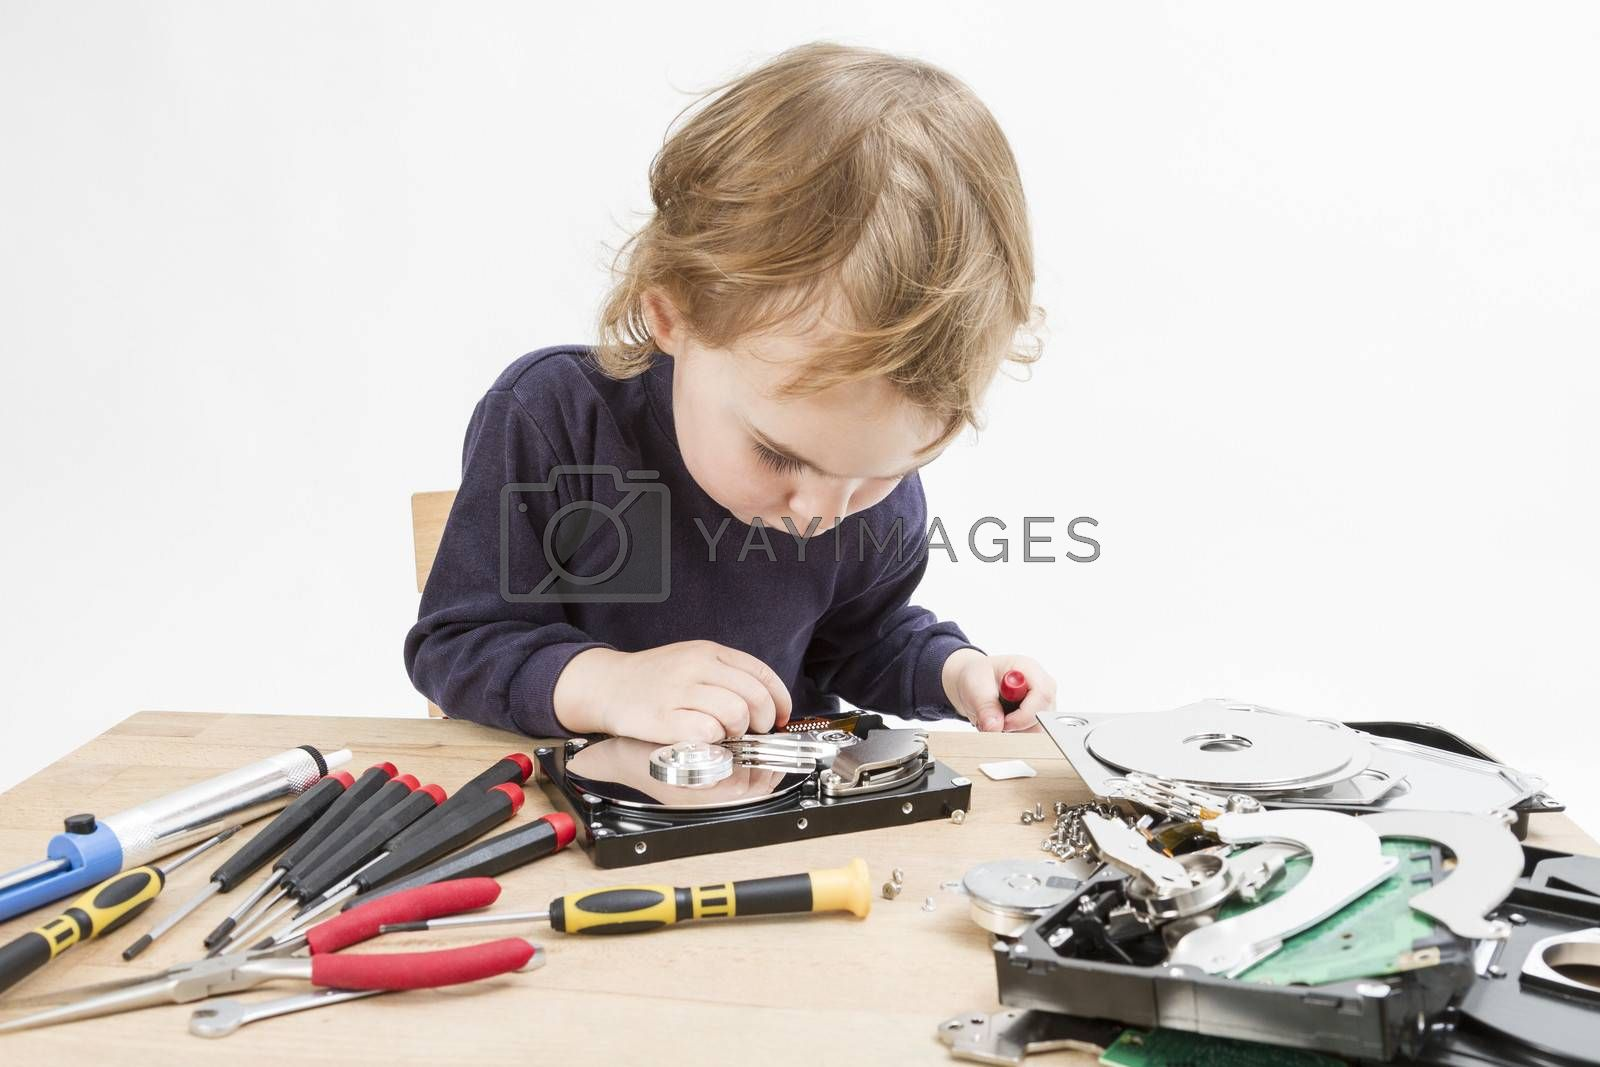 Royalty free image of child repairing hard disk drive by gewoldi